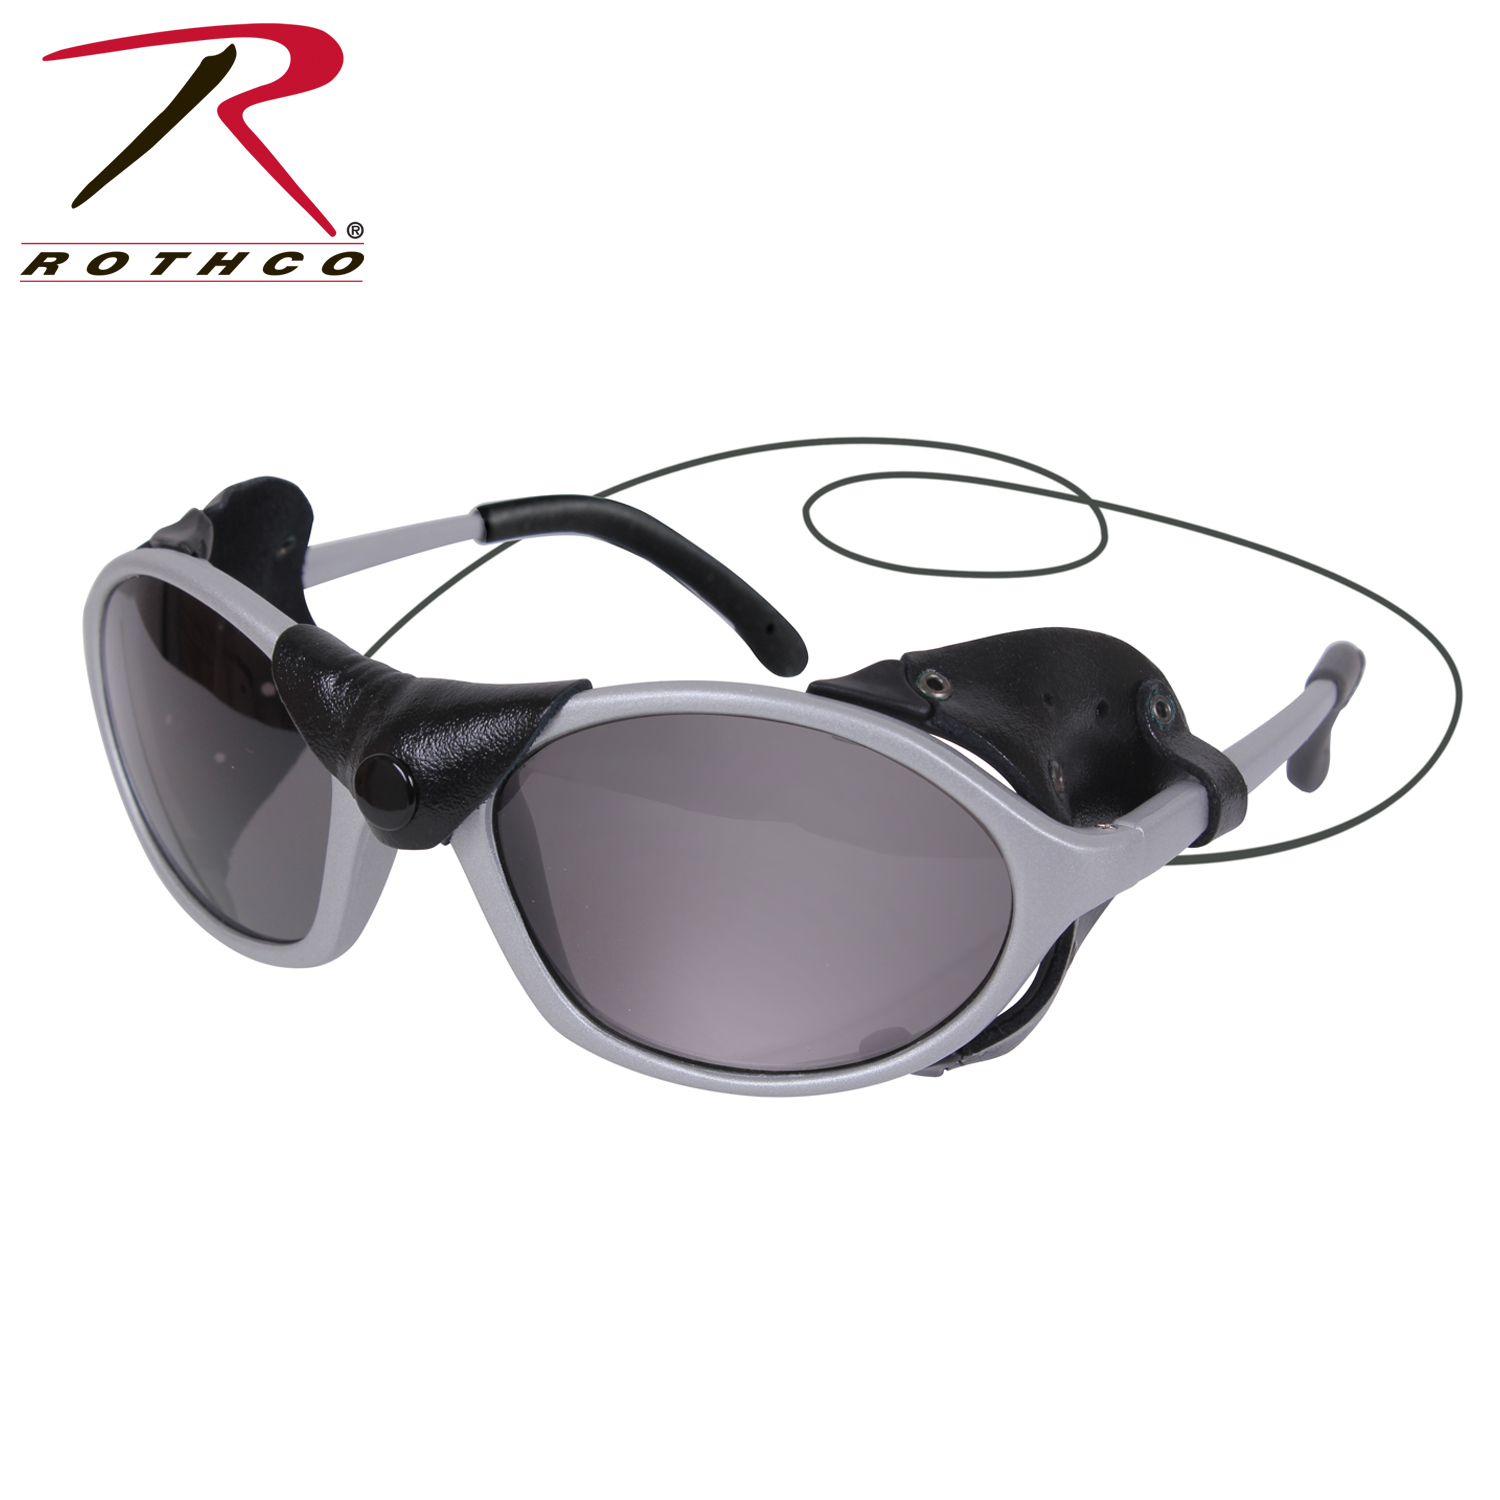 a370f7d2a9 Tactical Sunglasses With Wind Guard